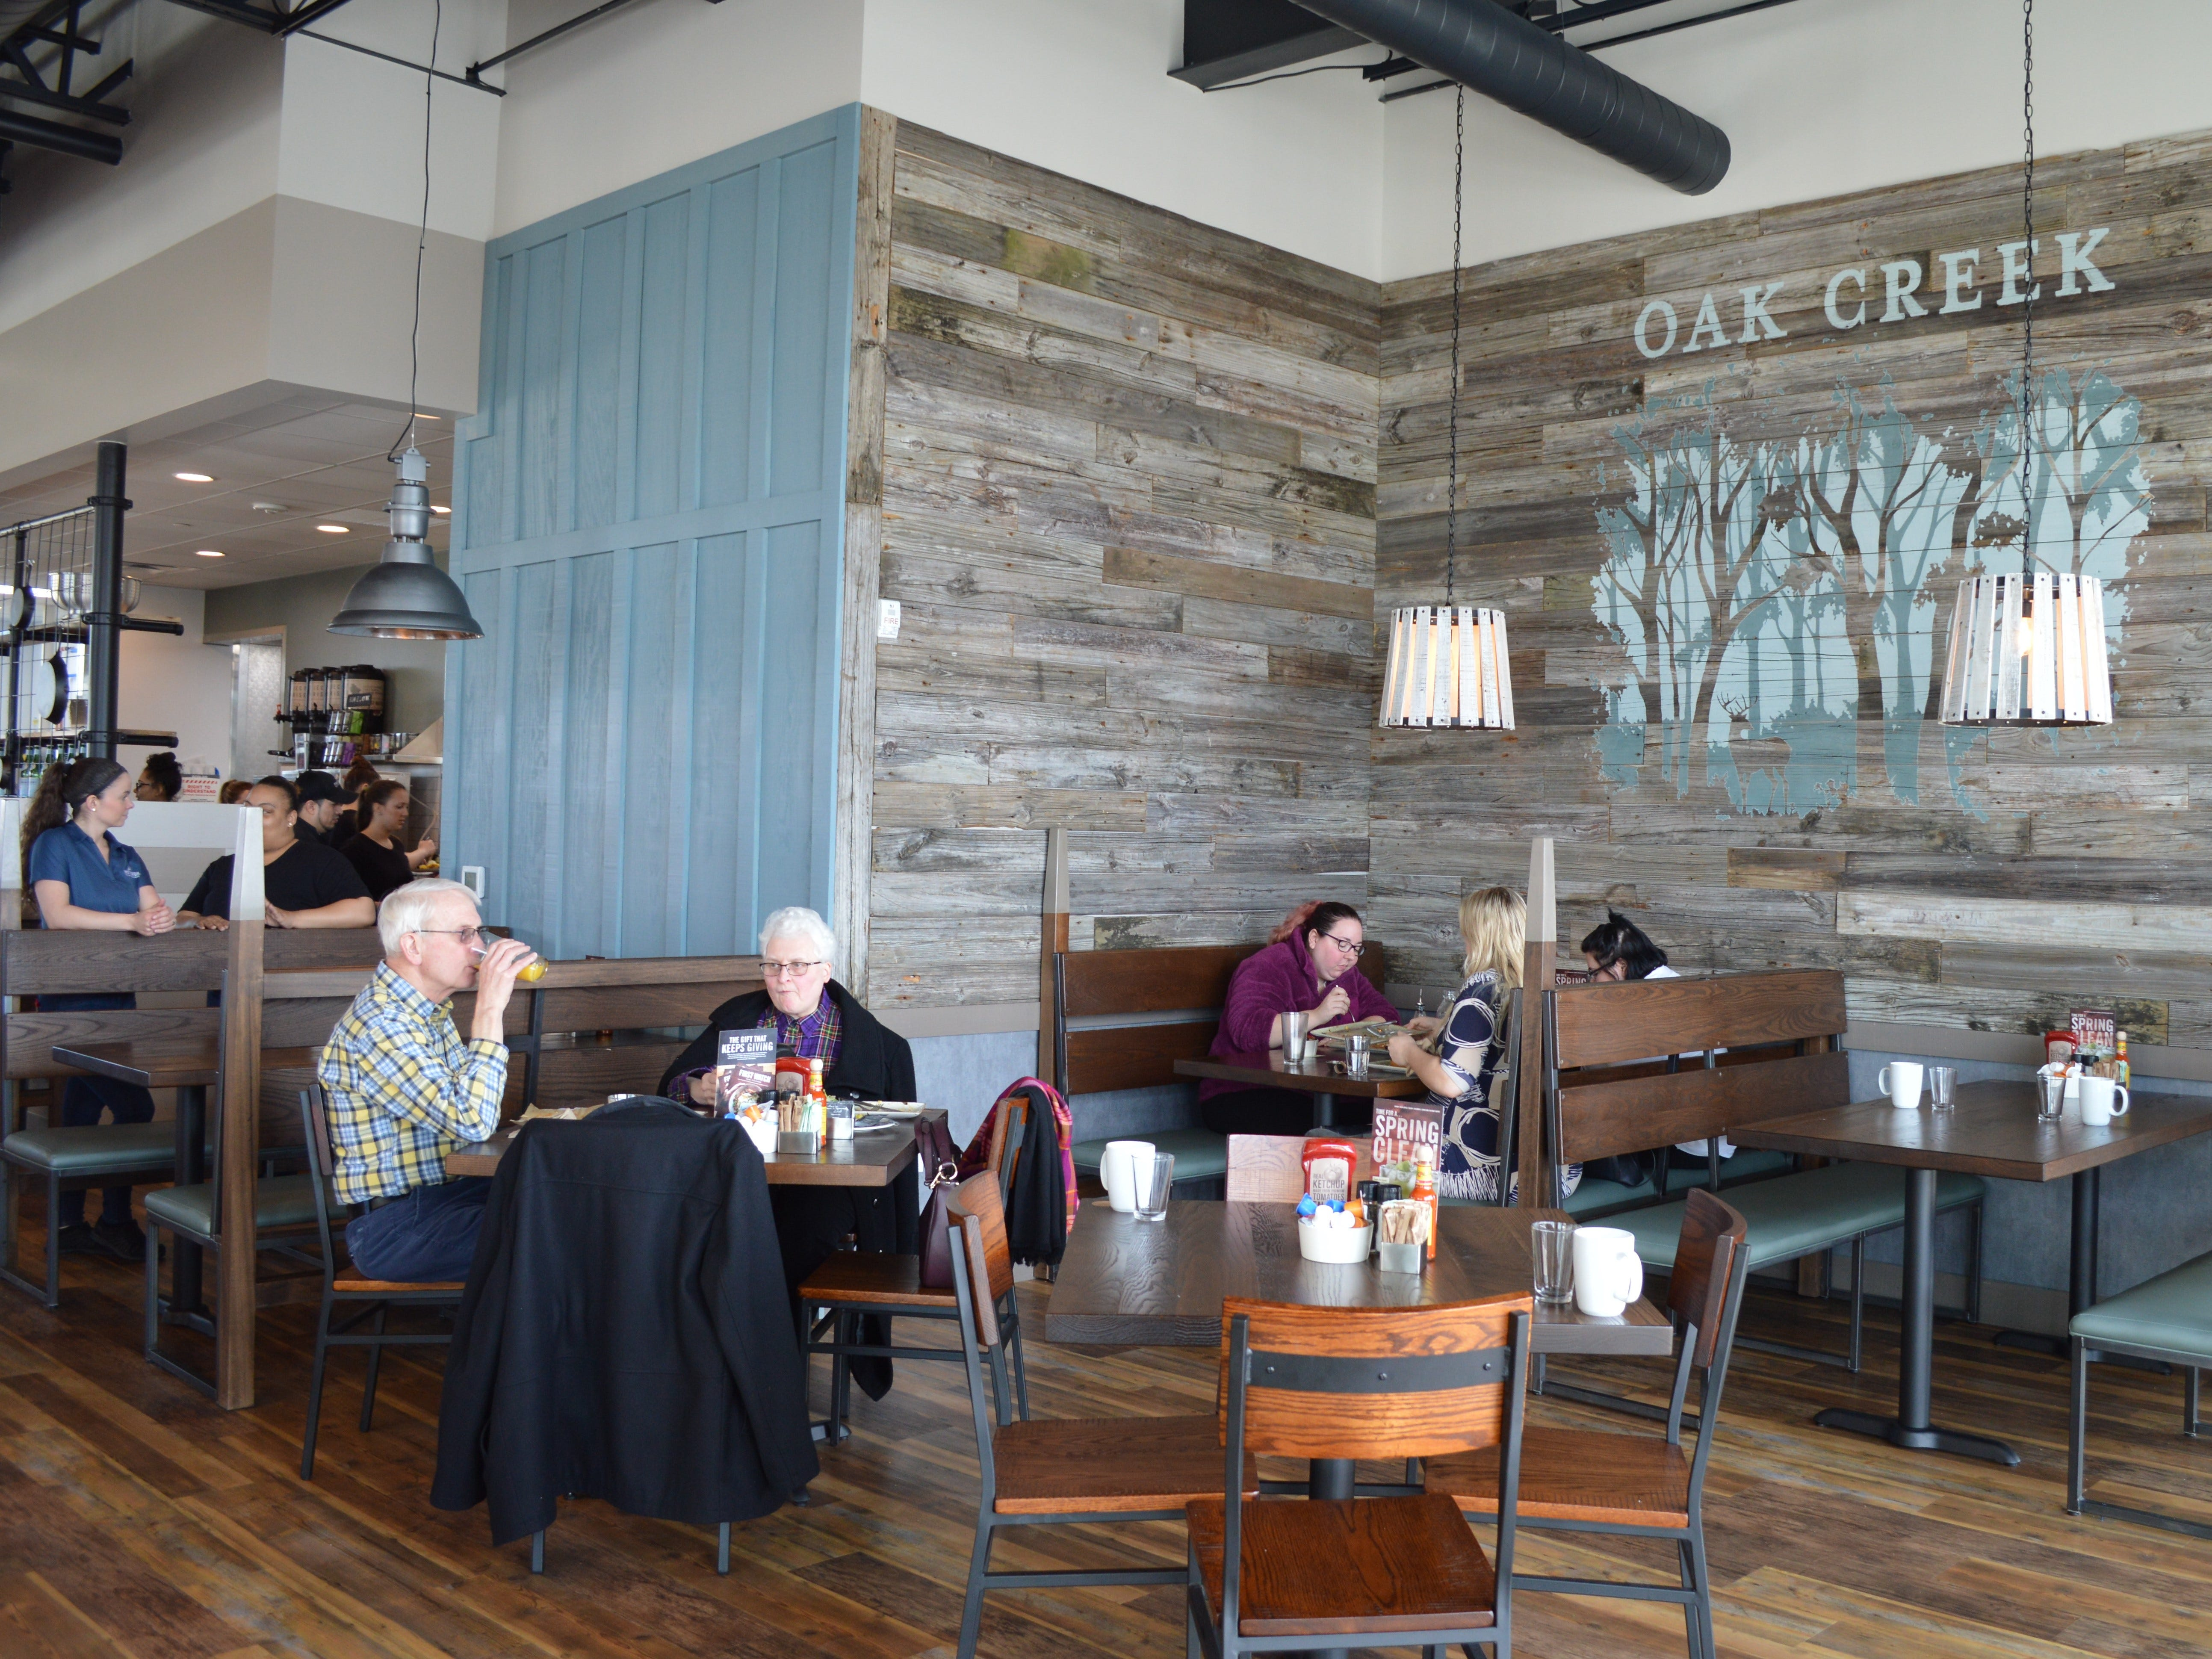 First Watch in Oak Creek is open from 7 a.m. to 2:30 p.m. daily.